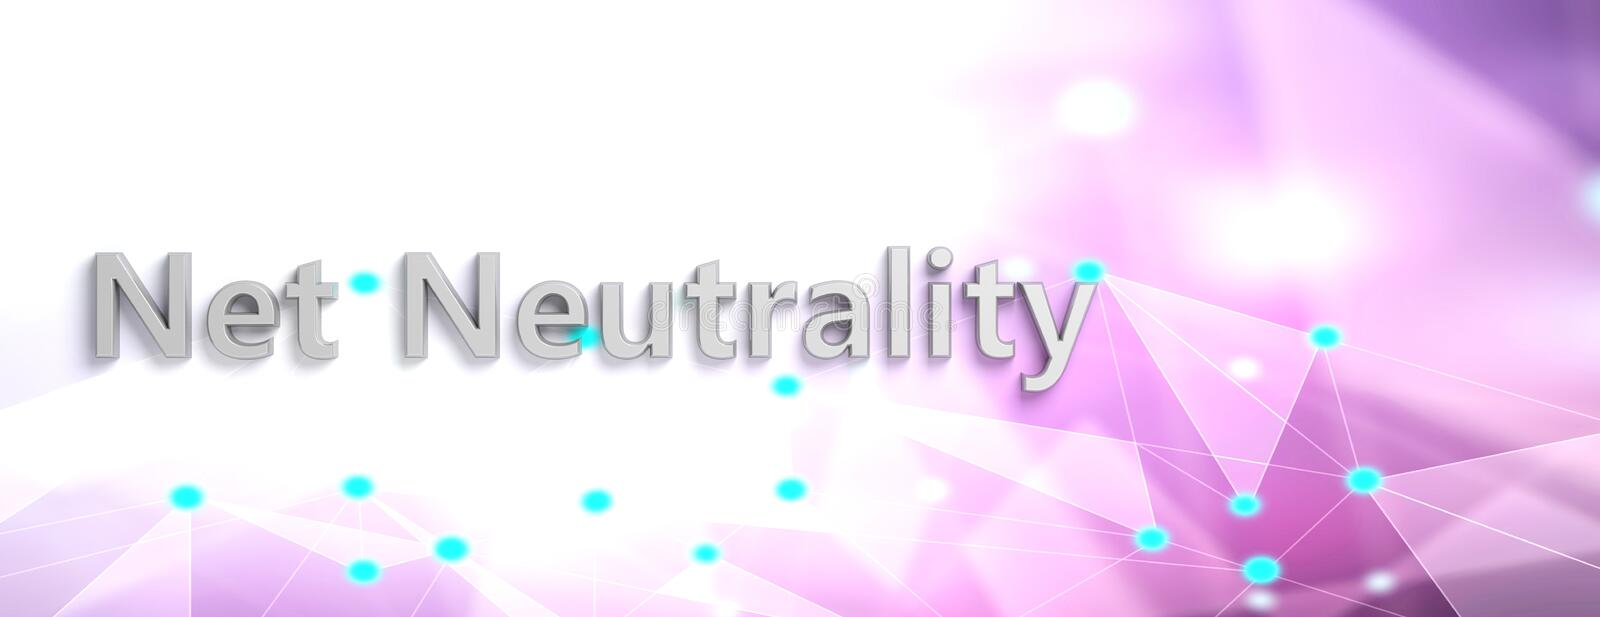 Net neutrality text on abstract digital background, copy space, banner. 3d illustration royalty free illustration